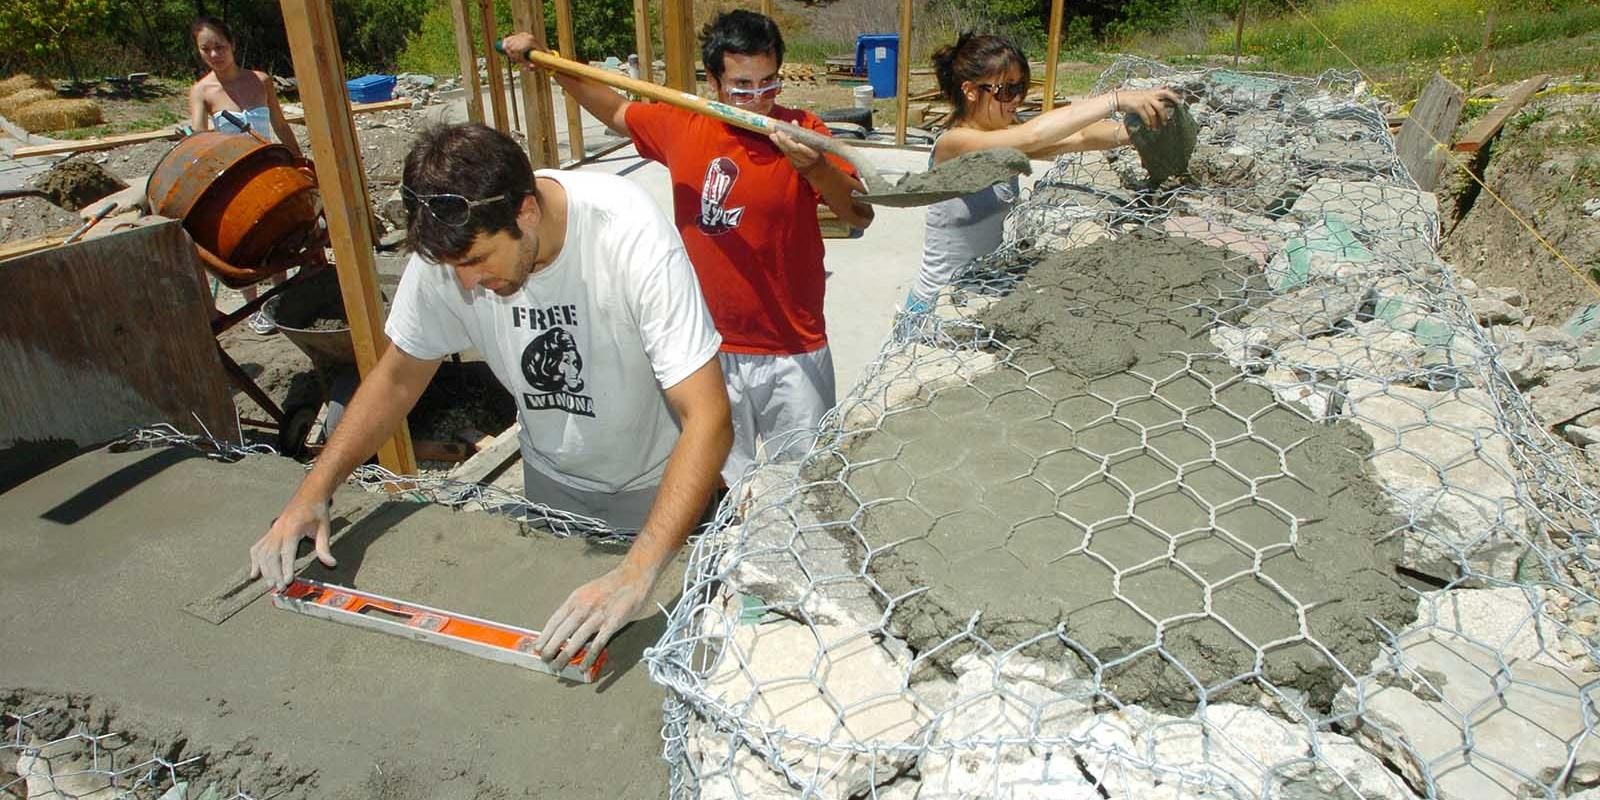 Regenerative studies and architecture students work on an alternative construction home at the Lyle Center, May 2006